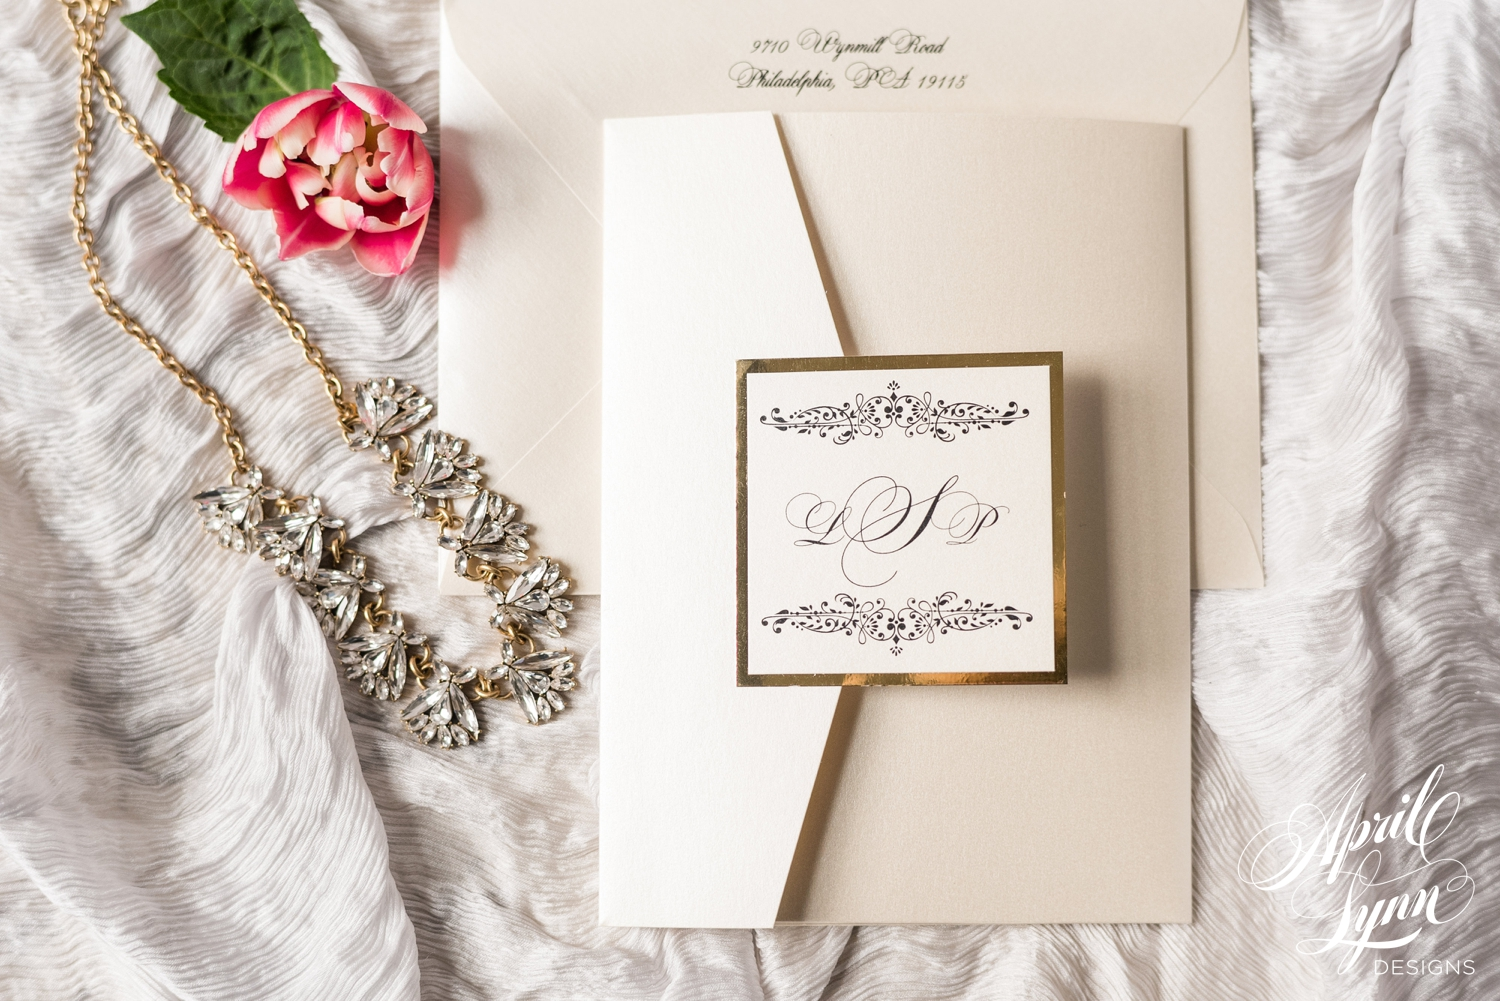 Classic Pocketfold Wedding Invitation Suite | www.aprillynndesigns.com